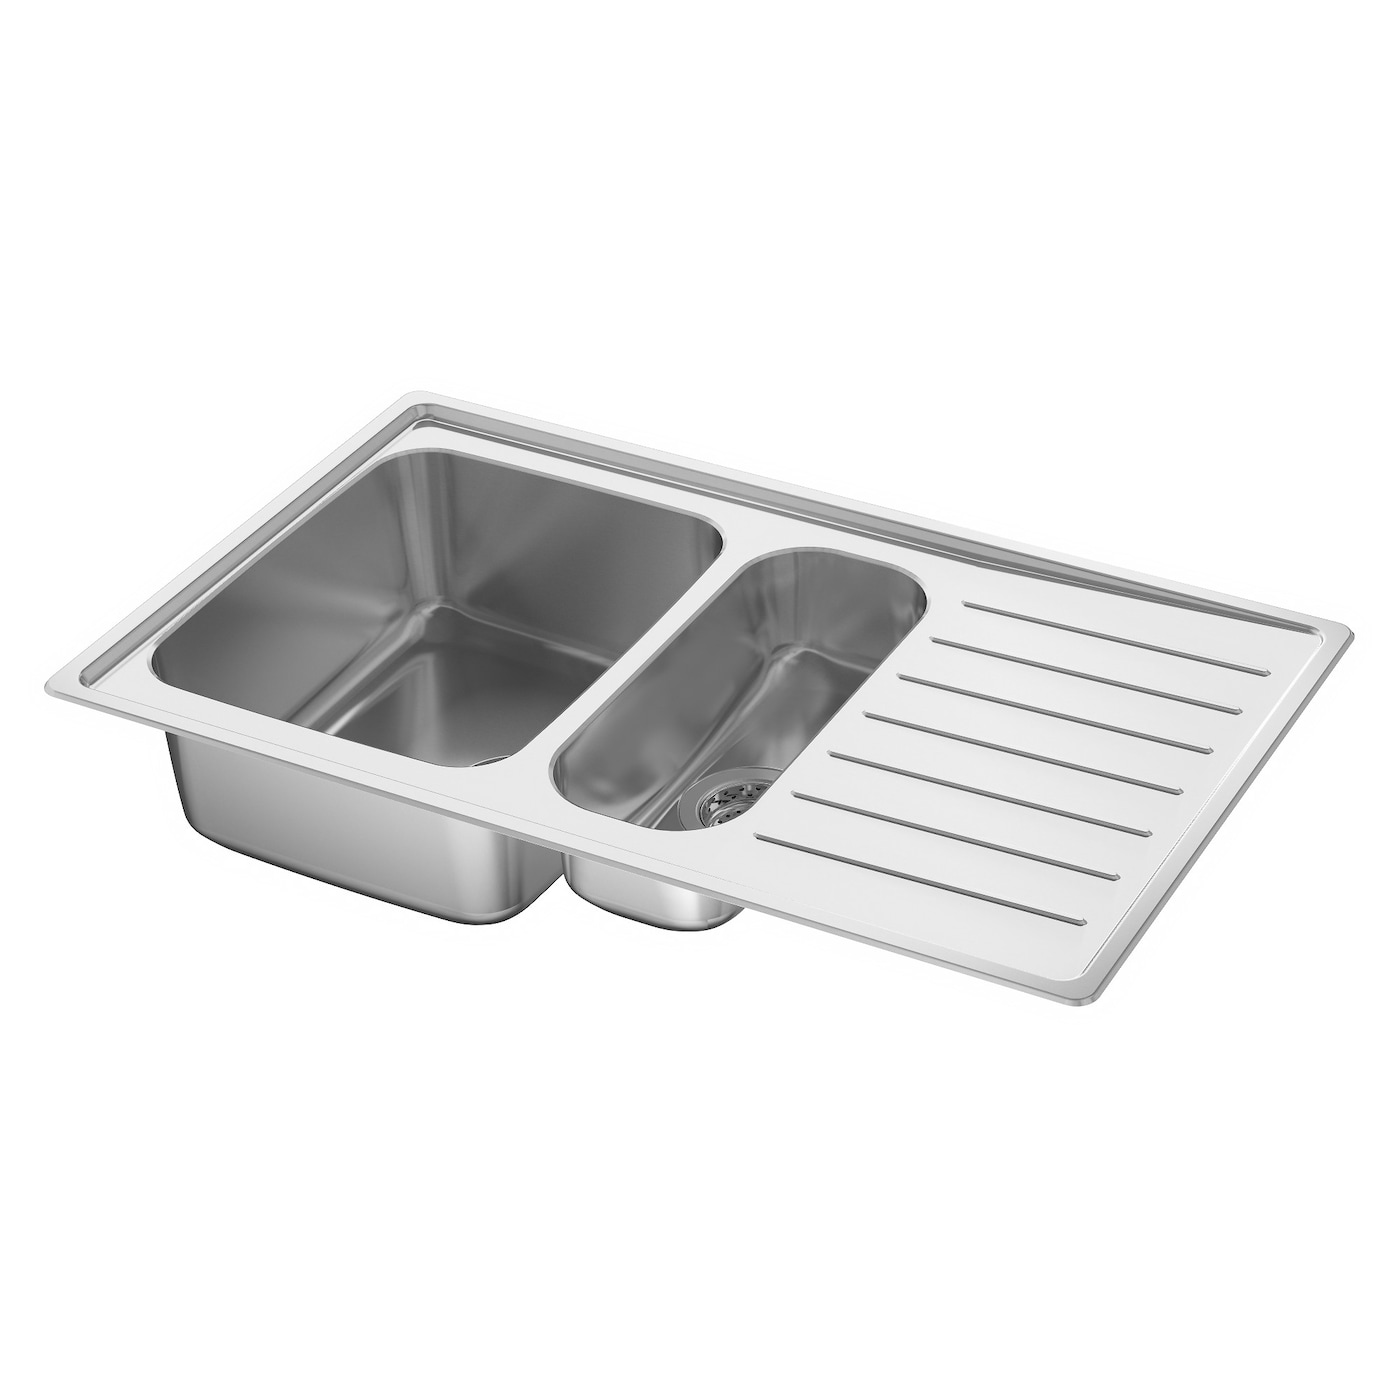 white kitchen sink with drainboard. IKEA VATTUDALEN Inset Sink, 1 ½ Bowl W Drainboard White Kitchen Sink With